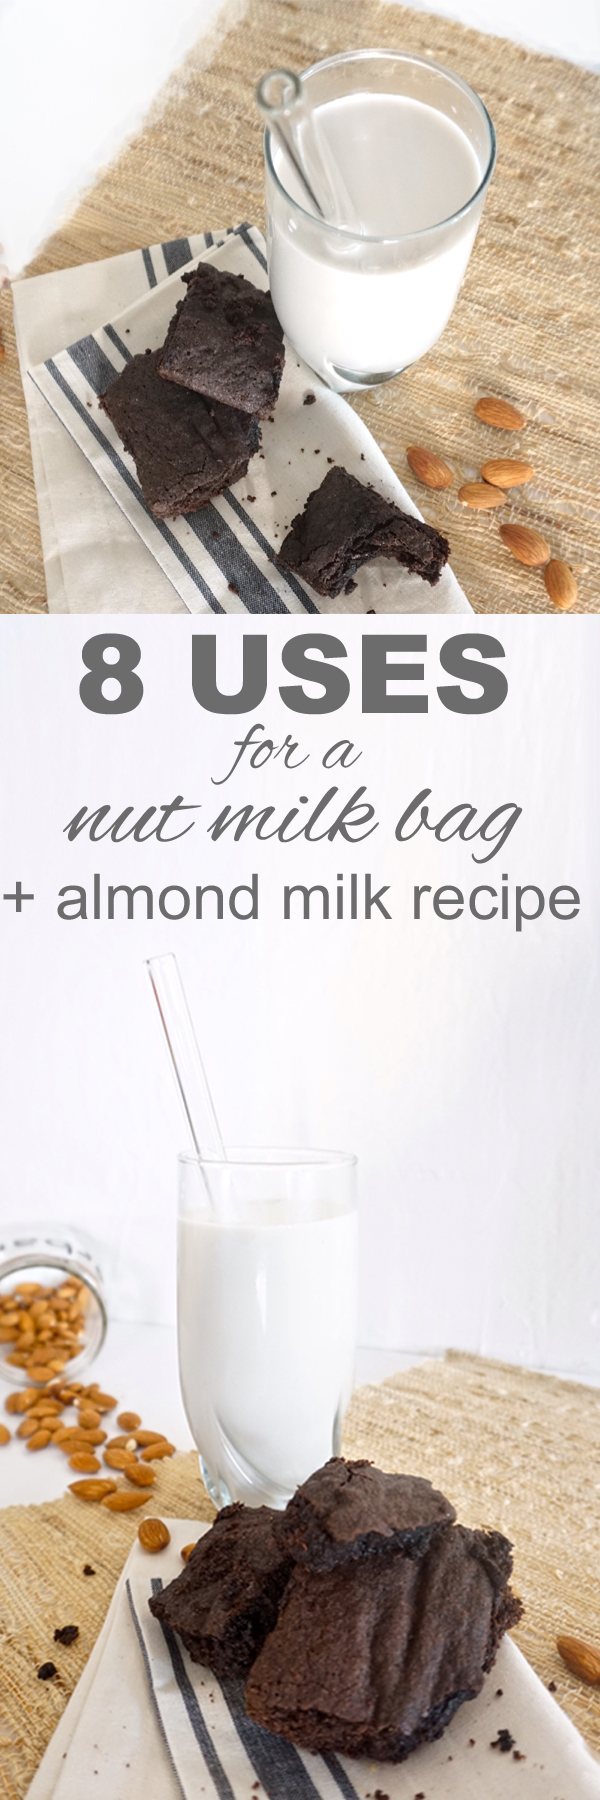 Eight uses for a nut milk bag, plus a recipe for almond milk from www.goingzerowaste.com